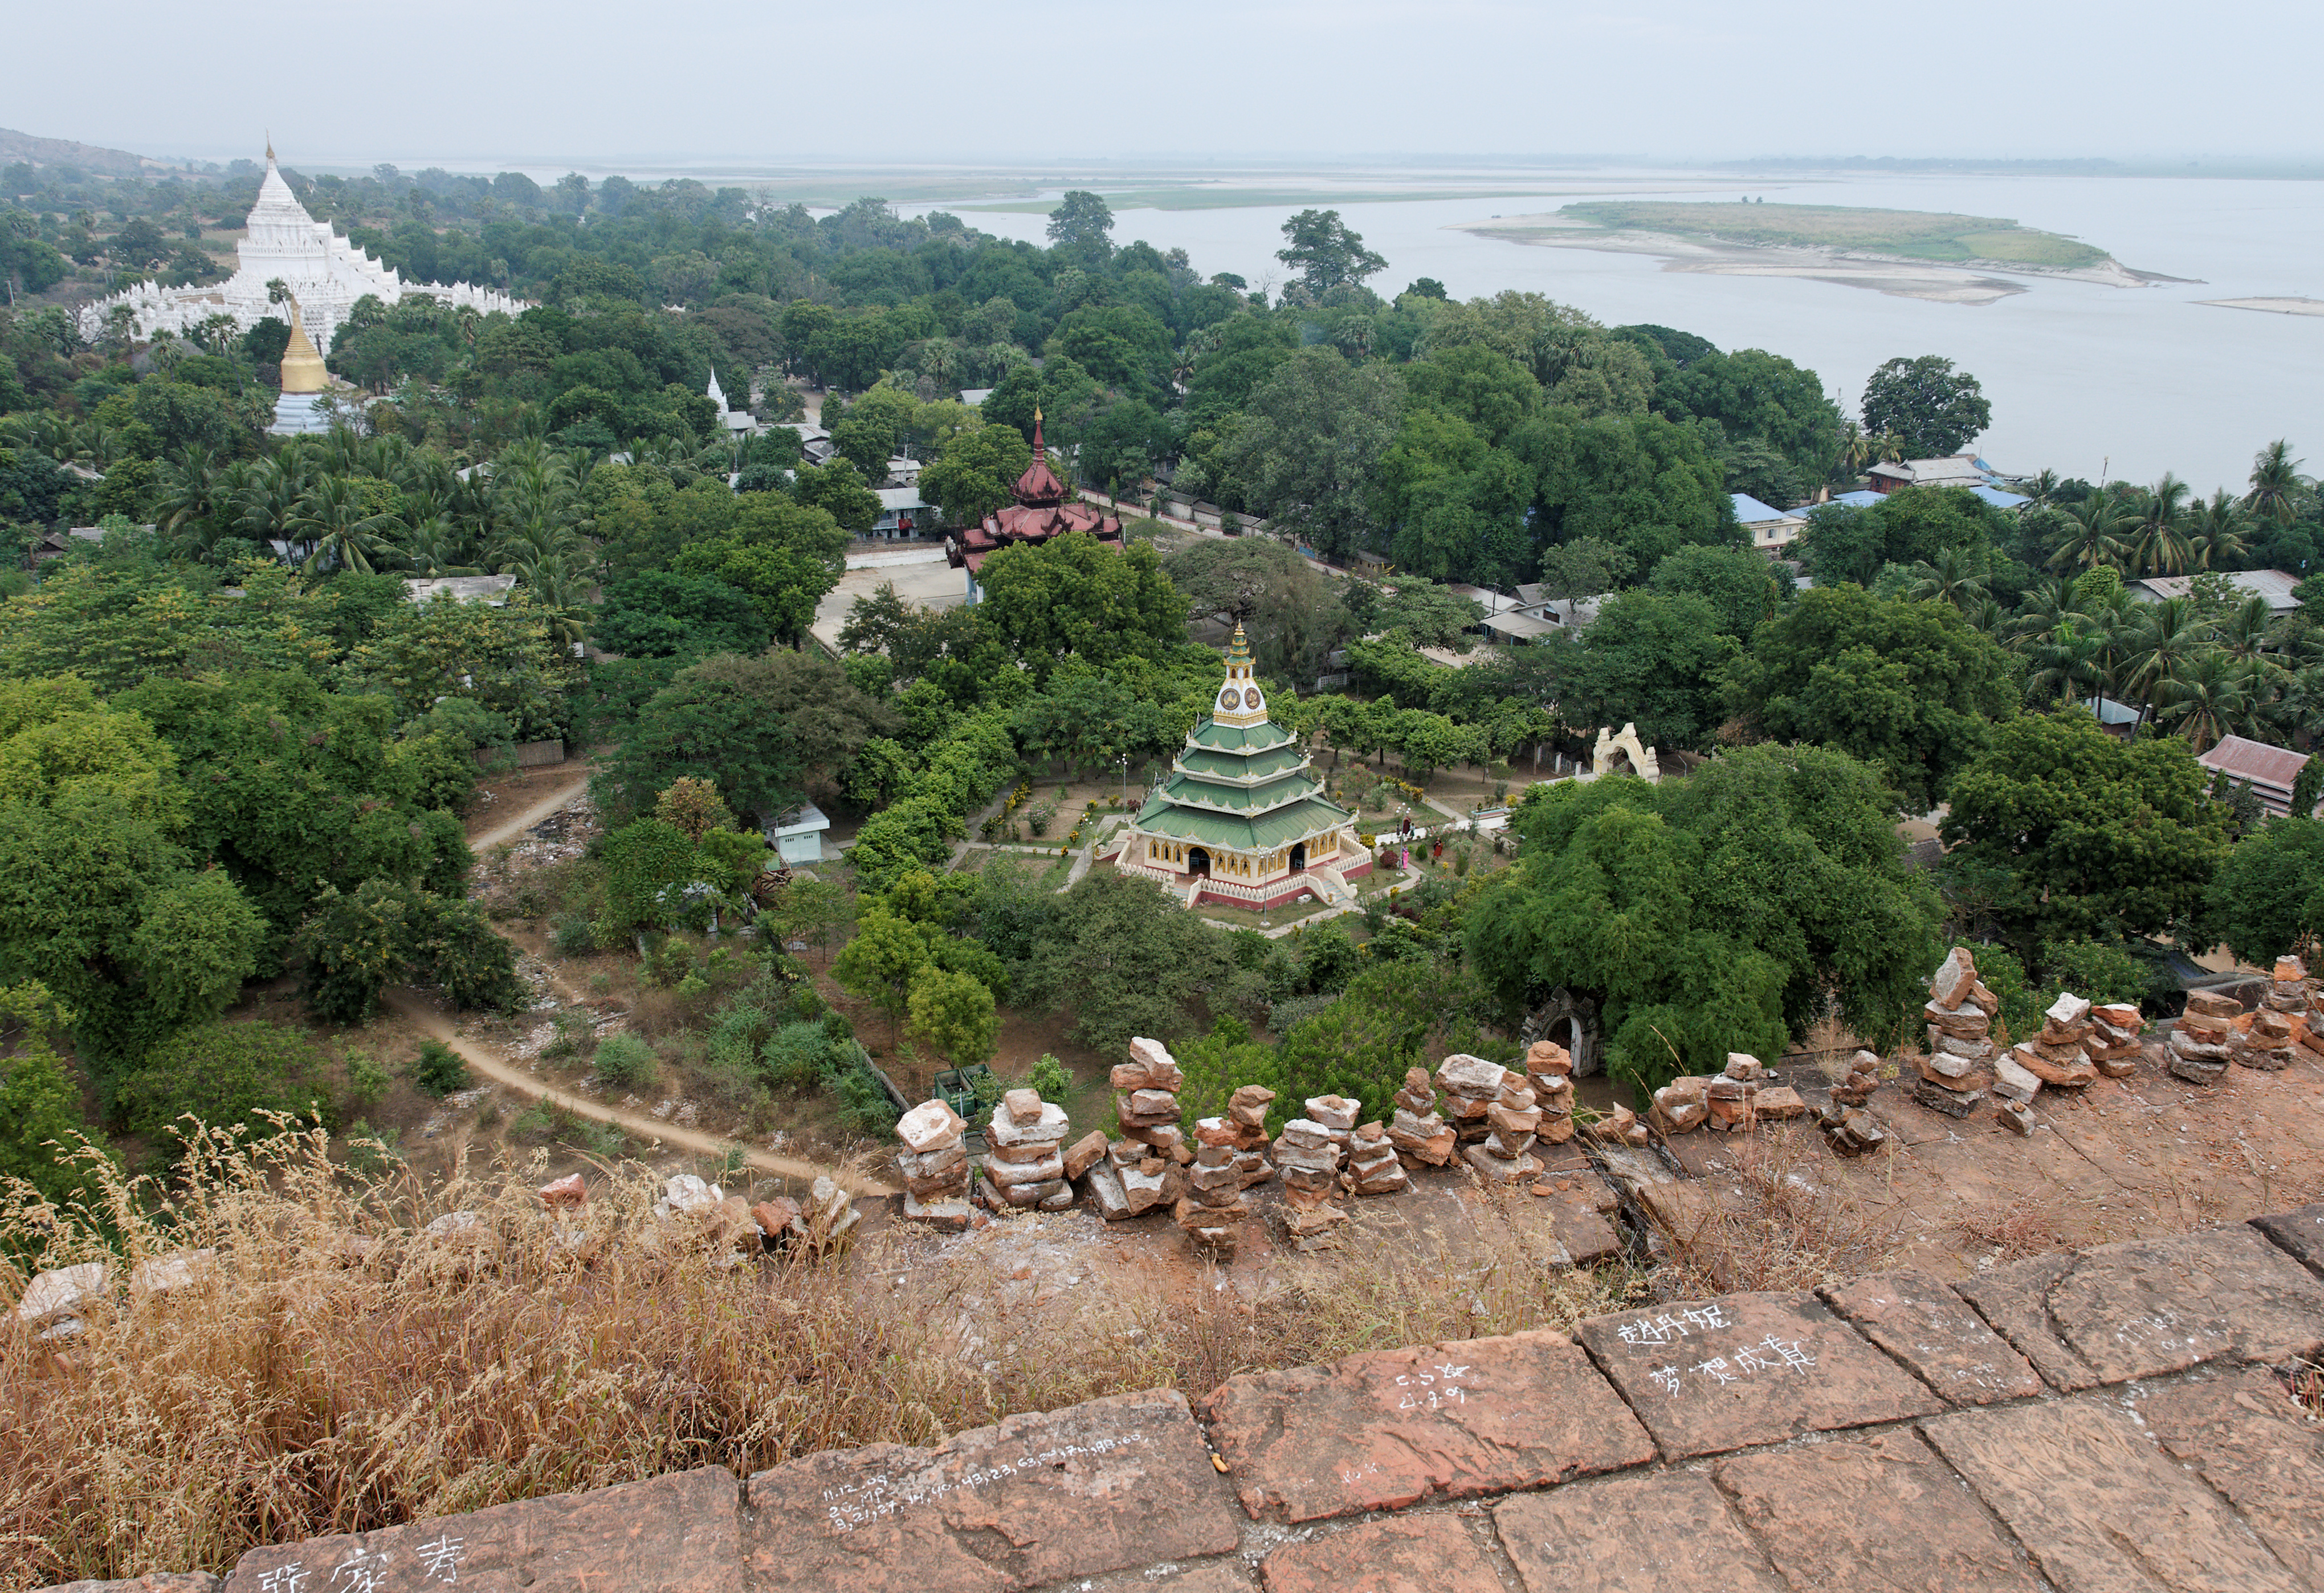 View of the Irrawaddy River